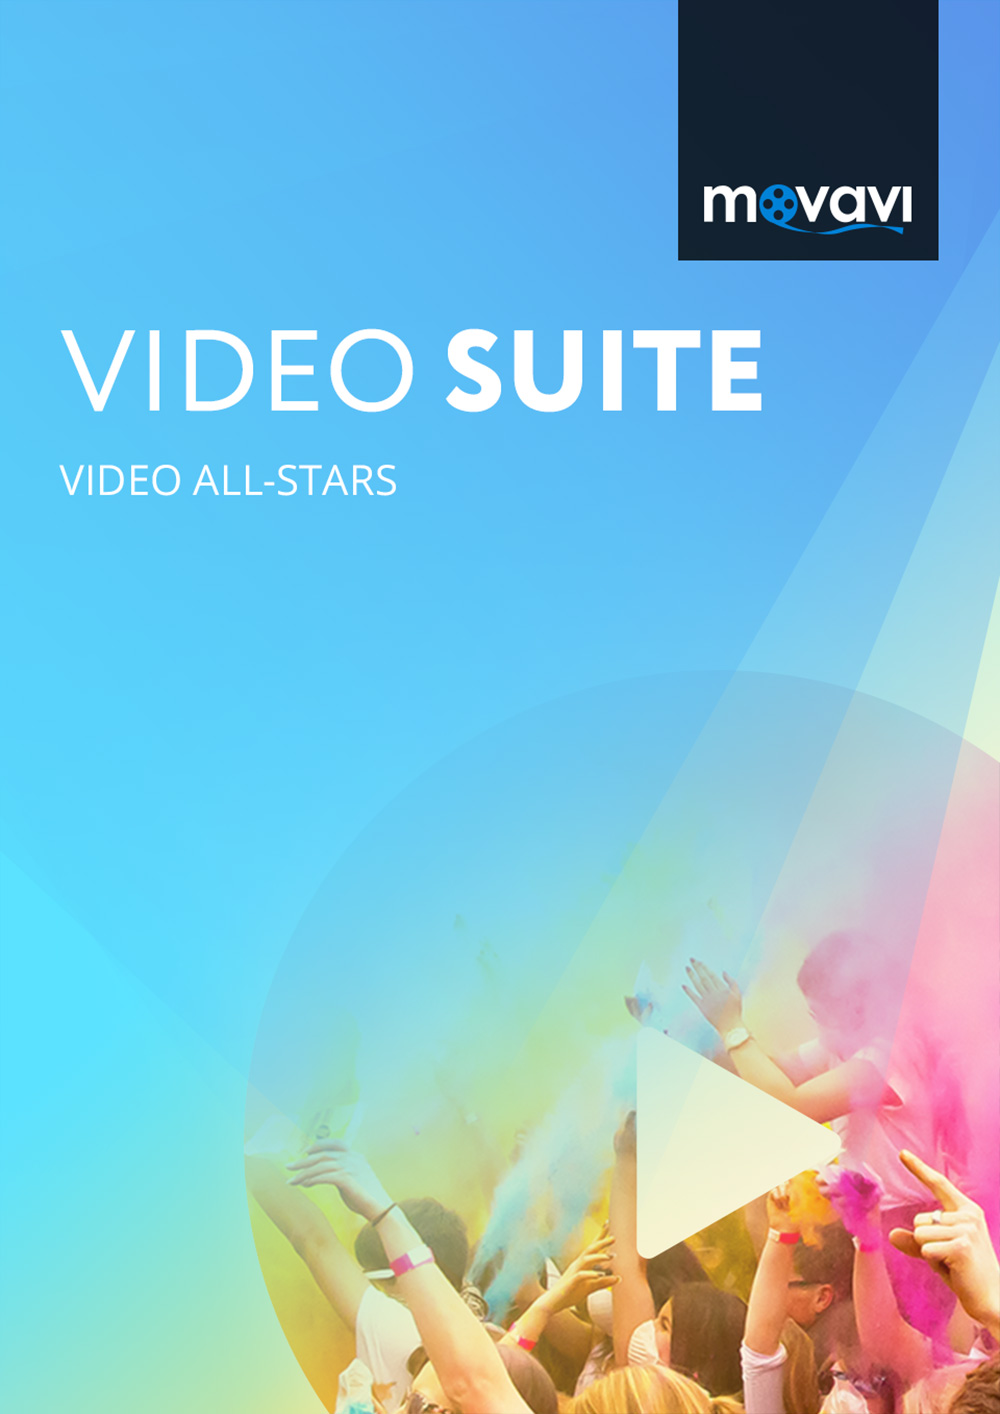 Movavi Video Suite 17 Video Editing Software Personal [Download] by Movavi